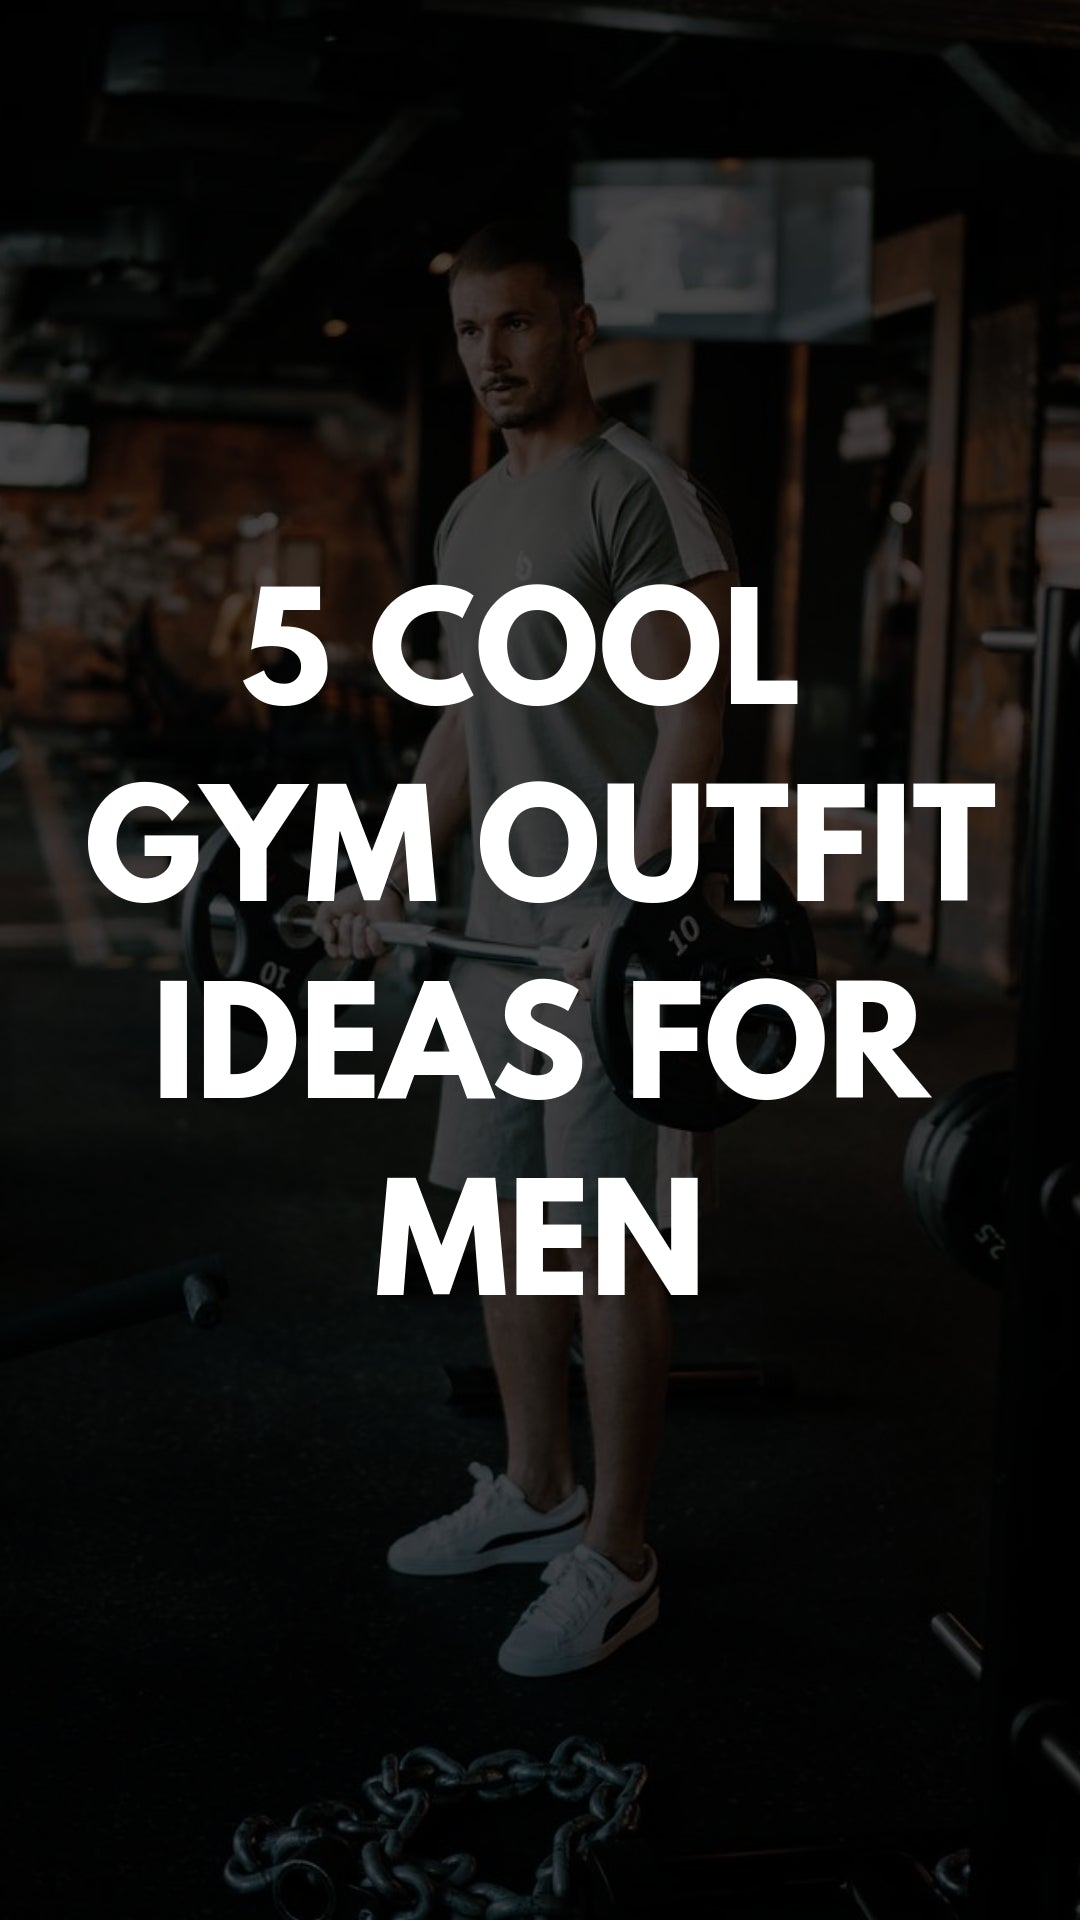 5 Amazing Gym Outfits For Men #gymwear #gymoutfits #workout #outfits #mensfashion